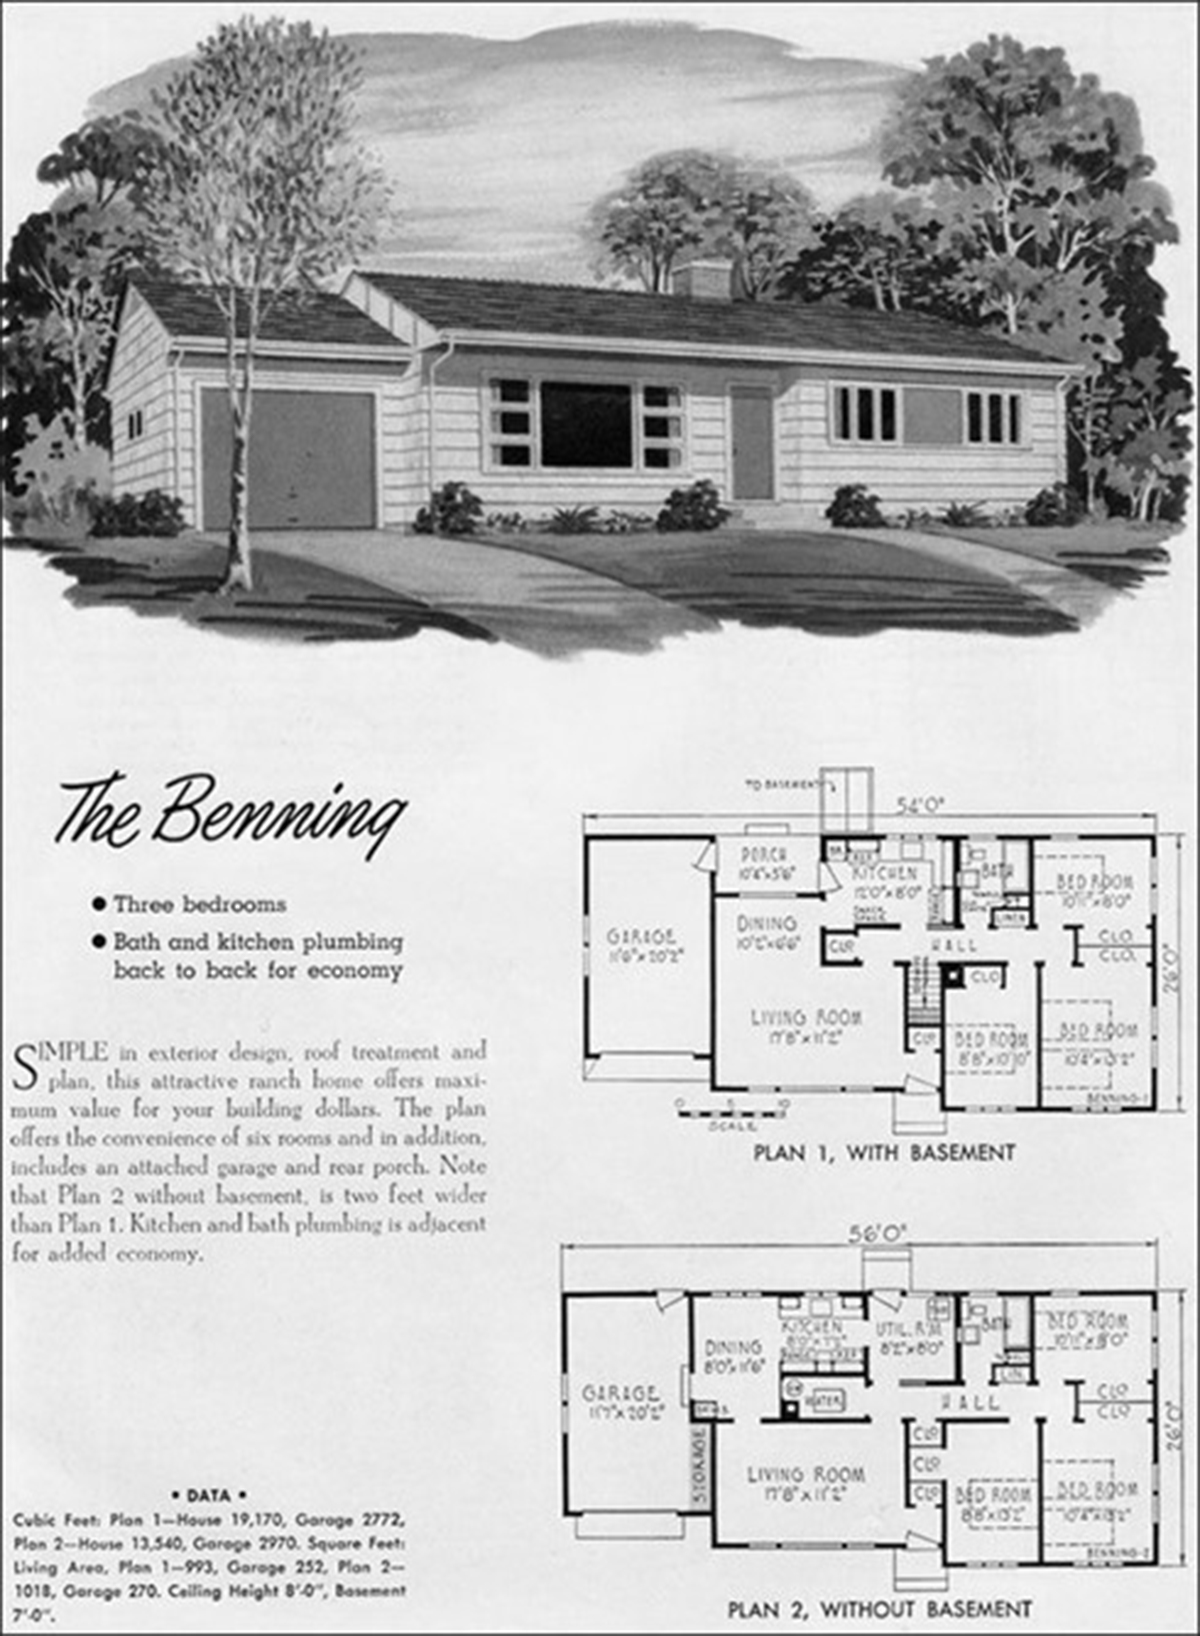 THE PLAN AS A MAP Real estate advertisements show pictures of houses and their floor plans. Most people look at this kind of a plan as a map of the house, imagining themselves living in it.